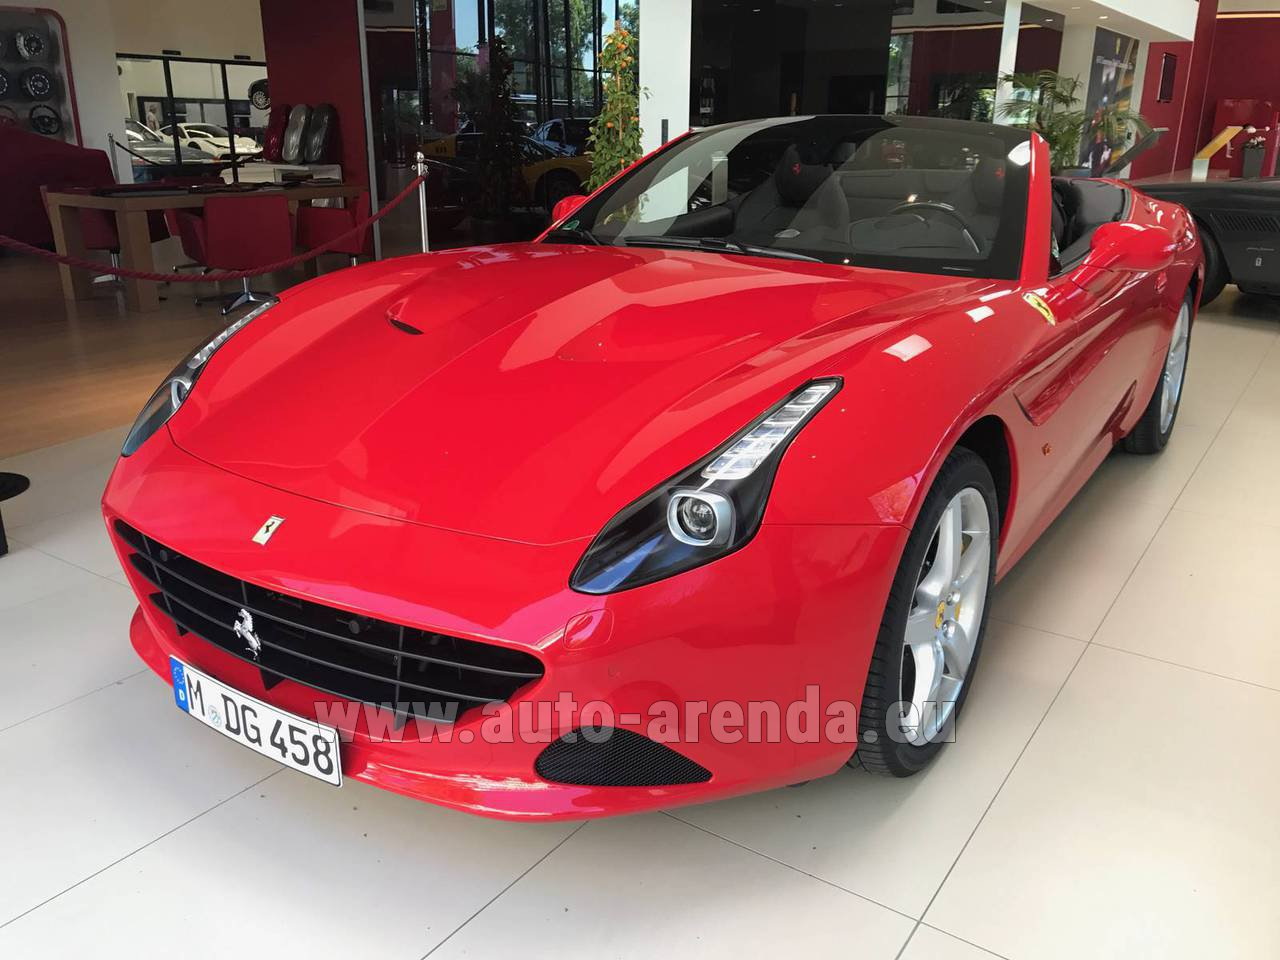 Rent The Ferrari California T Convertible Red Car In Germany